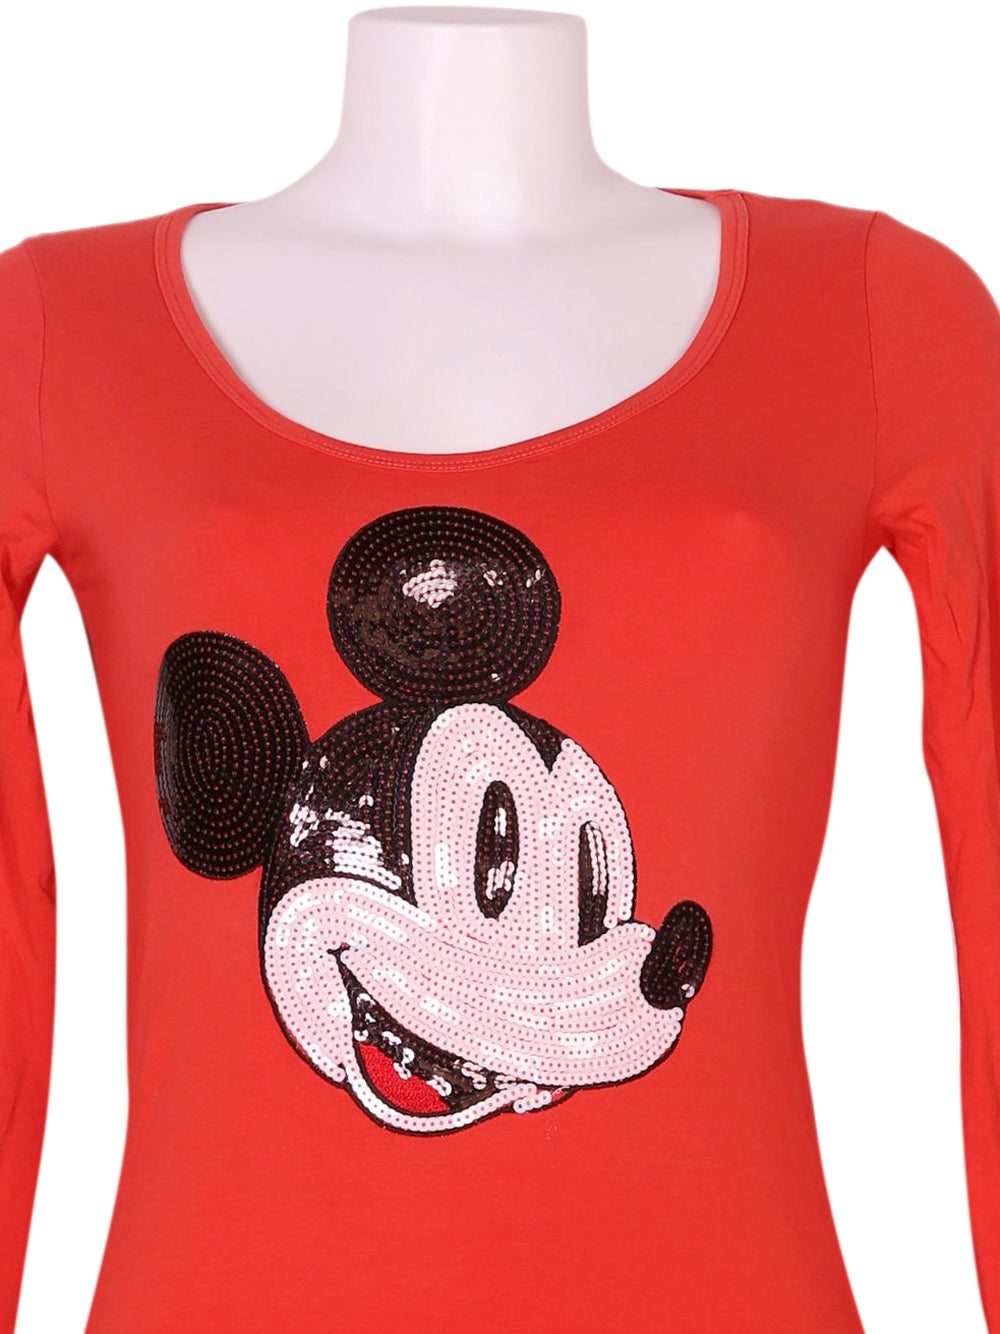 Detail photo of Preloved Disney Orange Woman's long sleeved shirt - size 8/S